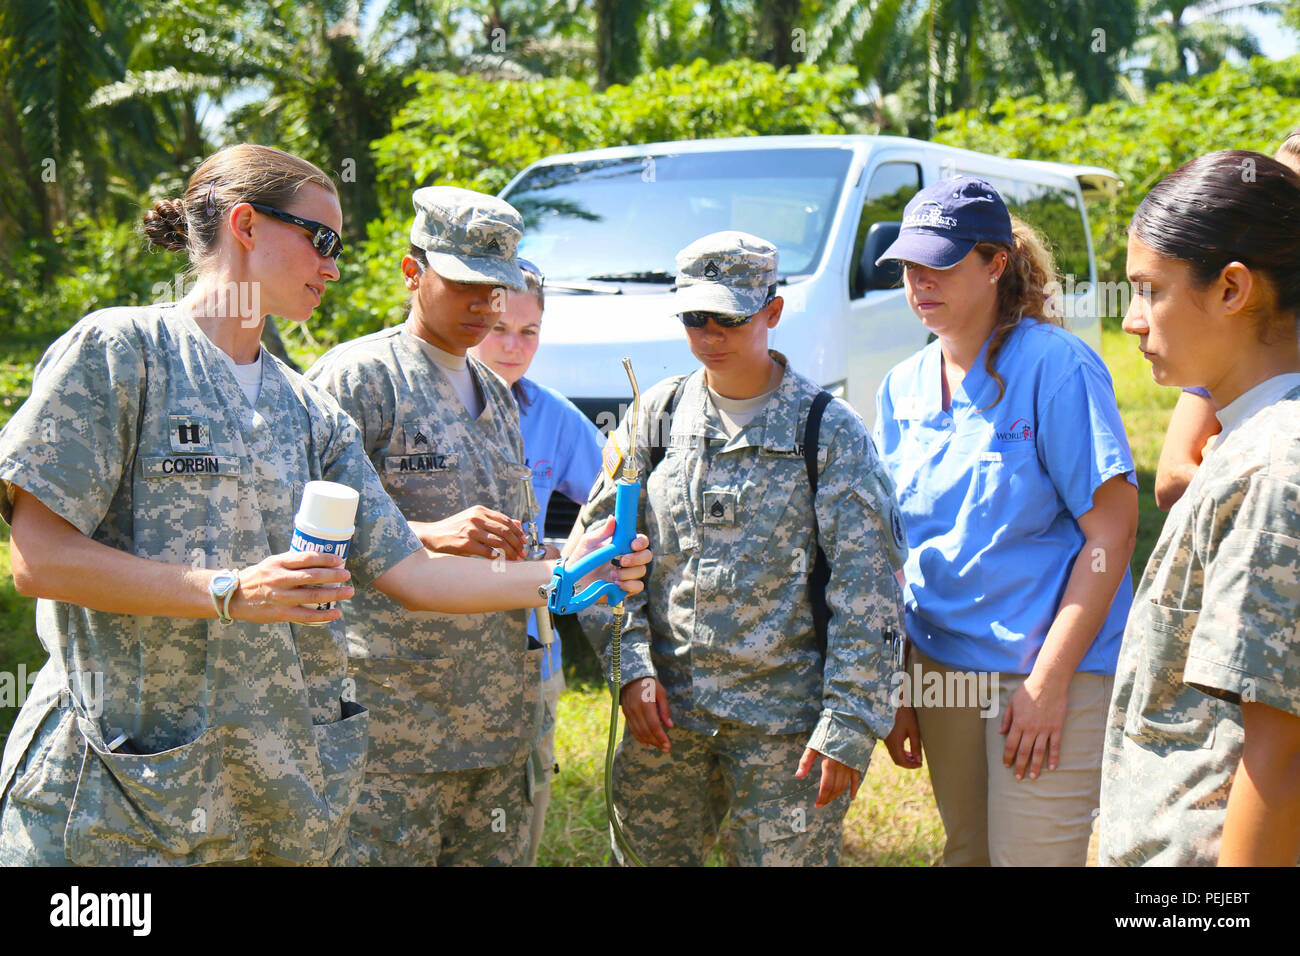 150830-A-ZA034-008 COLON, Honduras (Aug. 30, 2015) Army veterinarians, veterinarian technicians and a volunteer with the non-governmental organization (NGO) World Vets assigned to Military Sealift Command hospital ship USNS Comfort (T-AH 20), review medical equipment at a local farm in support of Continuing Promise 2015 (CP-15). World Vets volunteers are working alongside other NGOs and military members during CP-15. Continuing Promise is a U.S. Southern Command-sponsored and U.S. Naval Forces Southern Command/U.S. 4th Fleet-conducted deployment to conduct civil-military operations including h - Stock Image